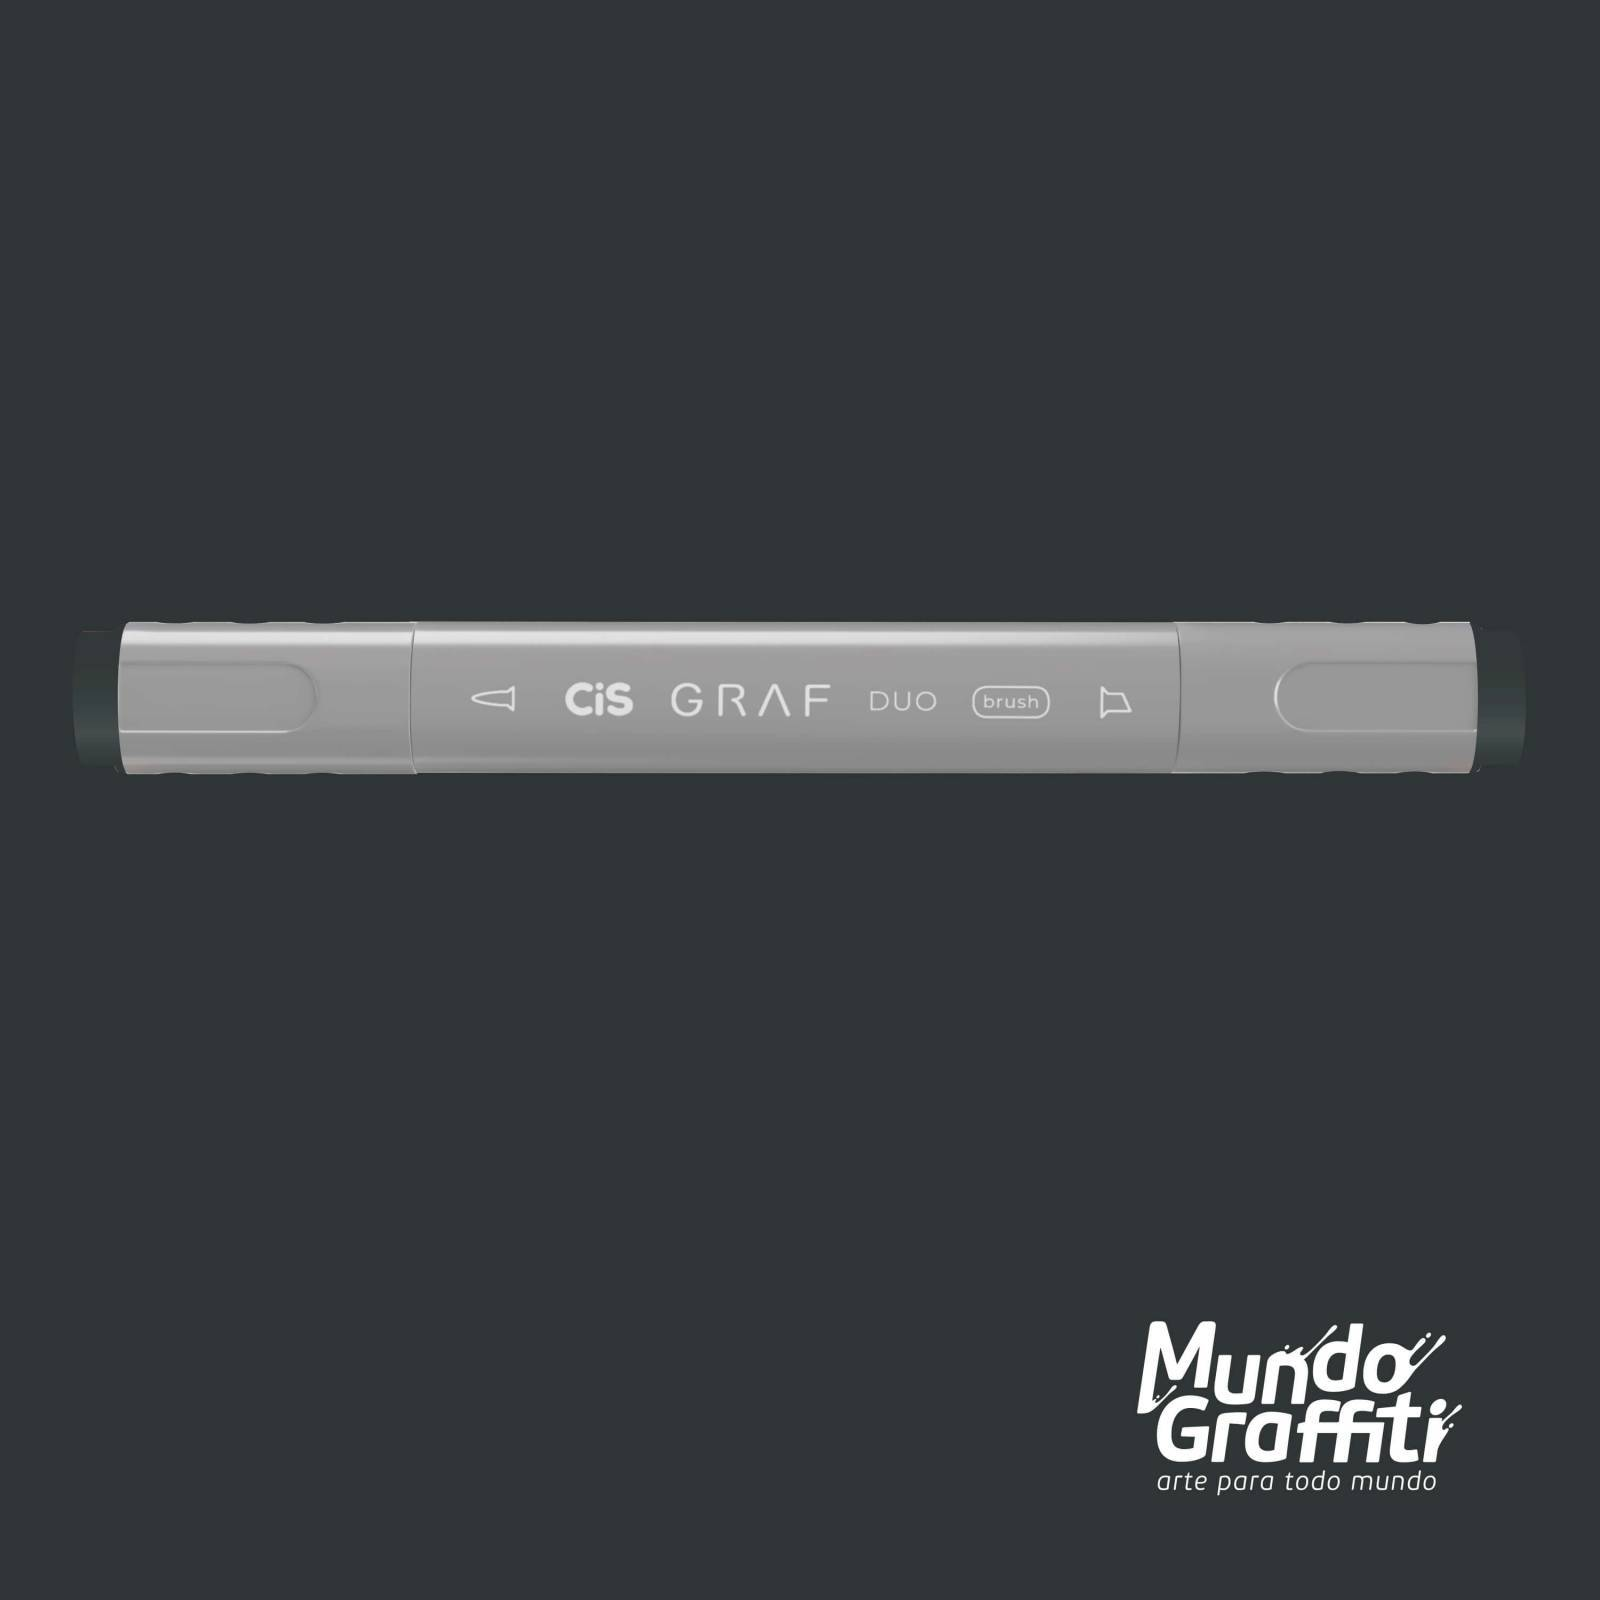 Marcador Cis Graf Duo Brush Cool Grey CG7 - Mundo Graffiti